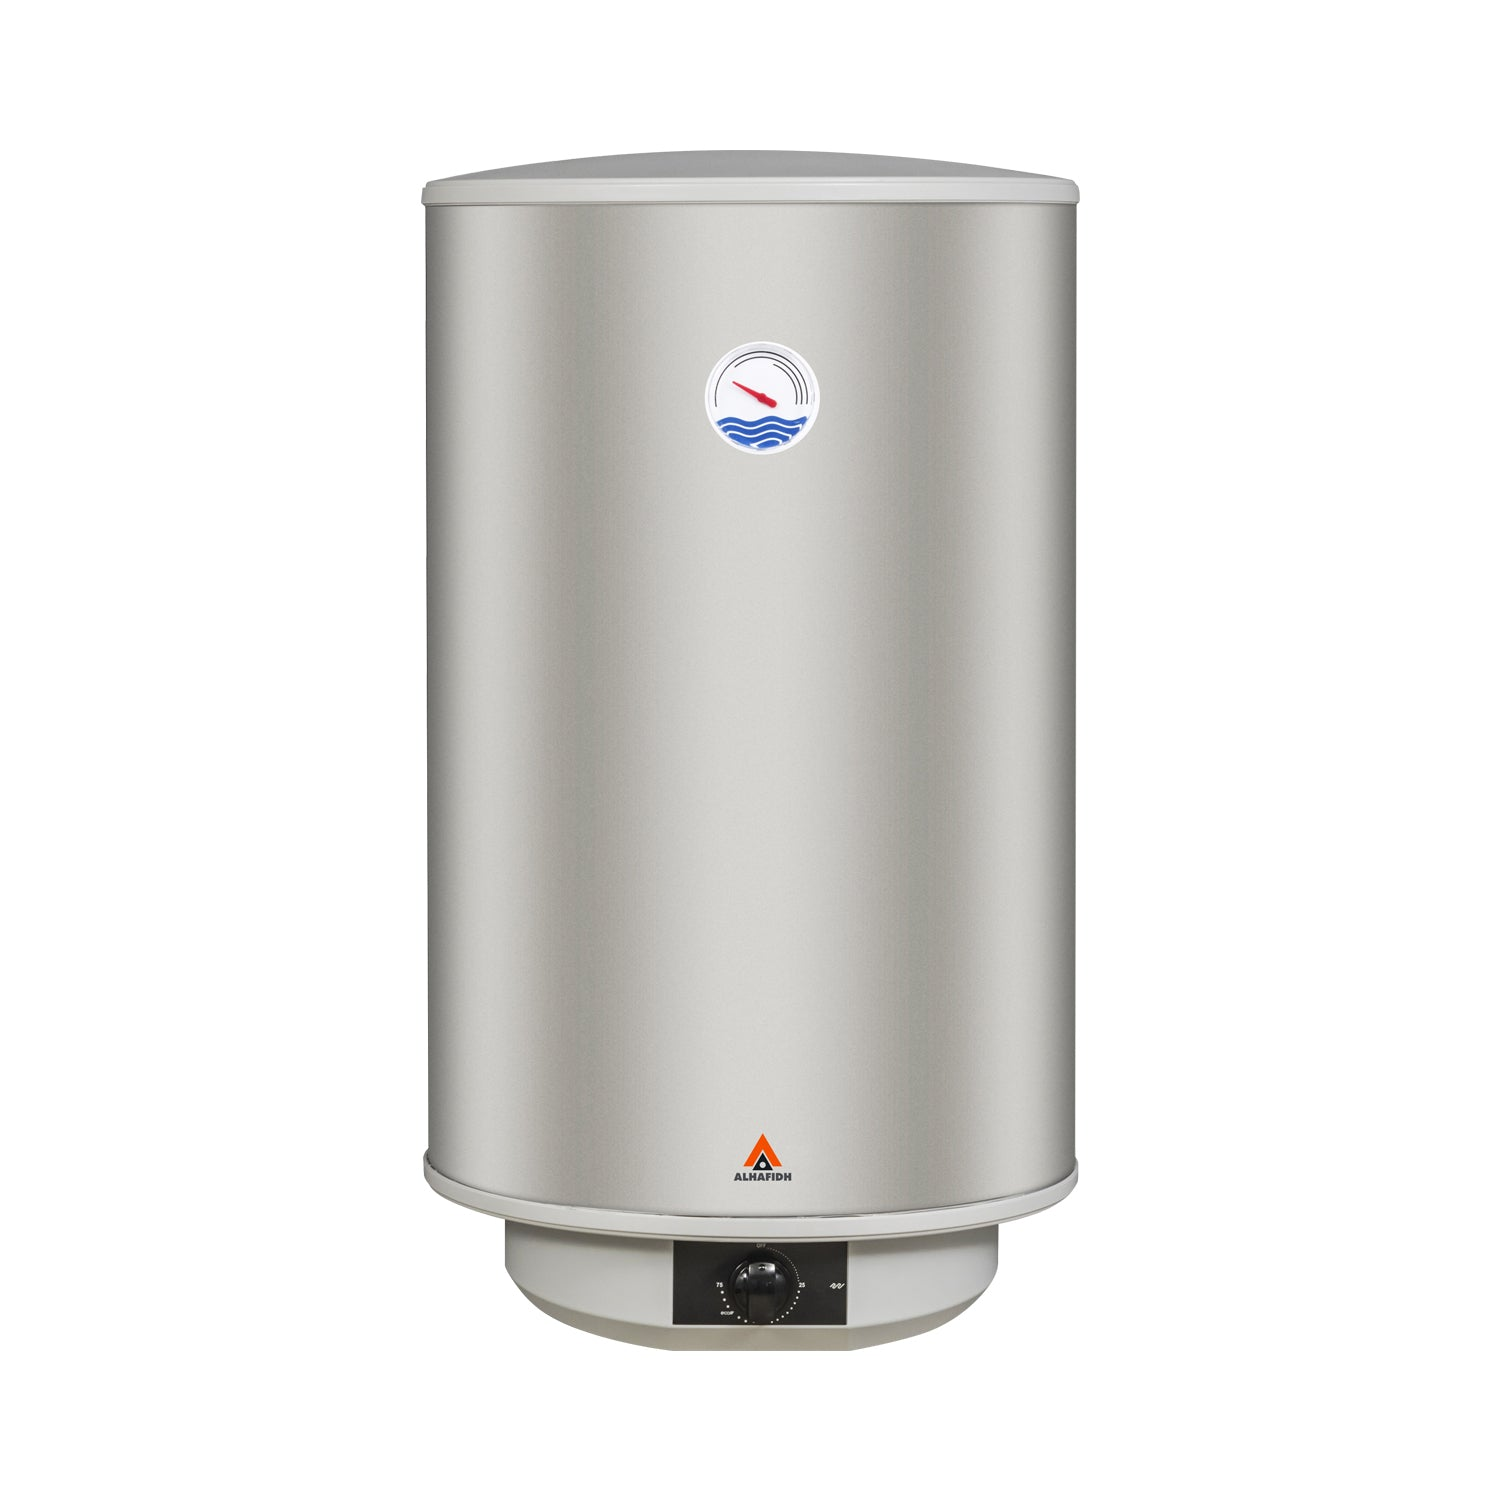 100L Electric Water Heater